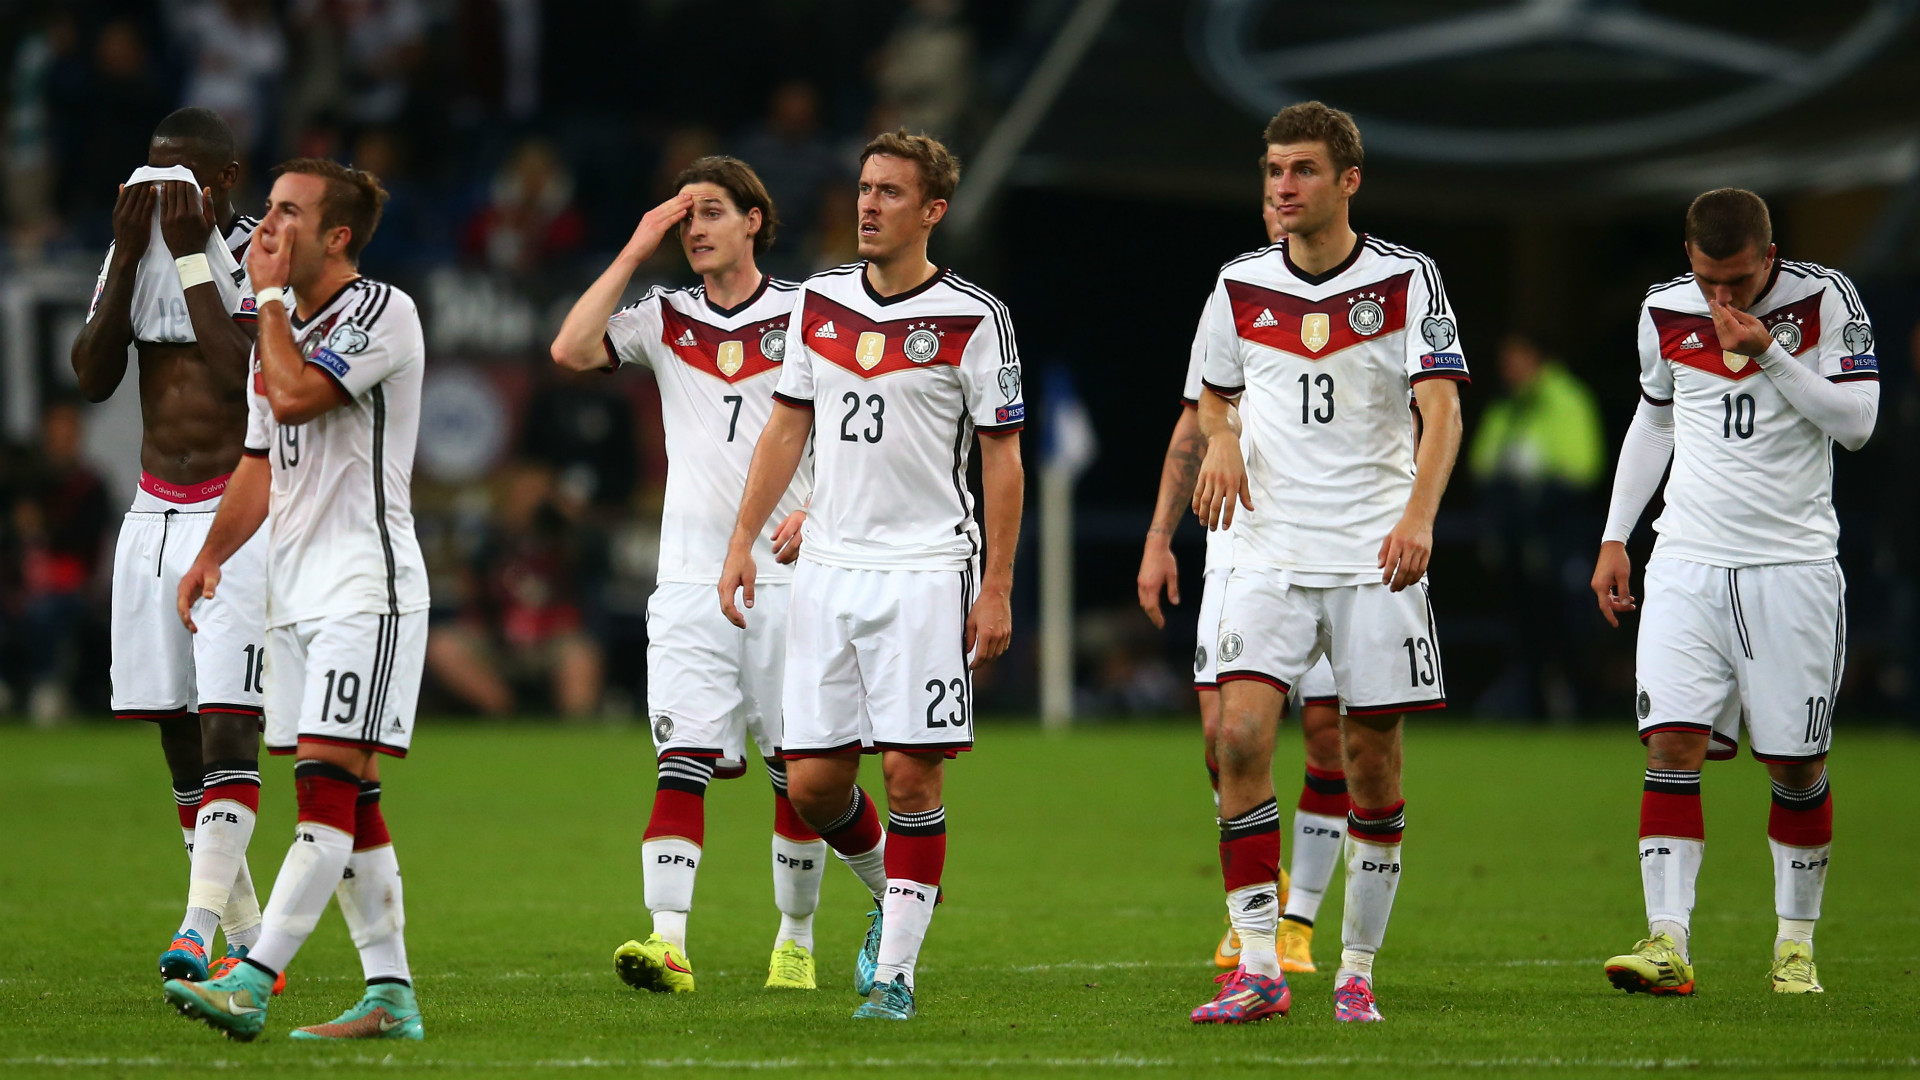 Germany National Football Team Wallpapers (60+ images)